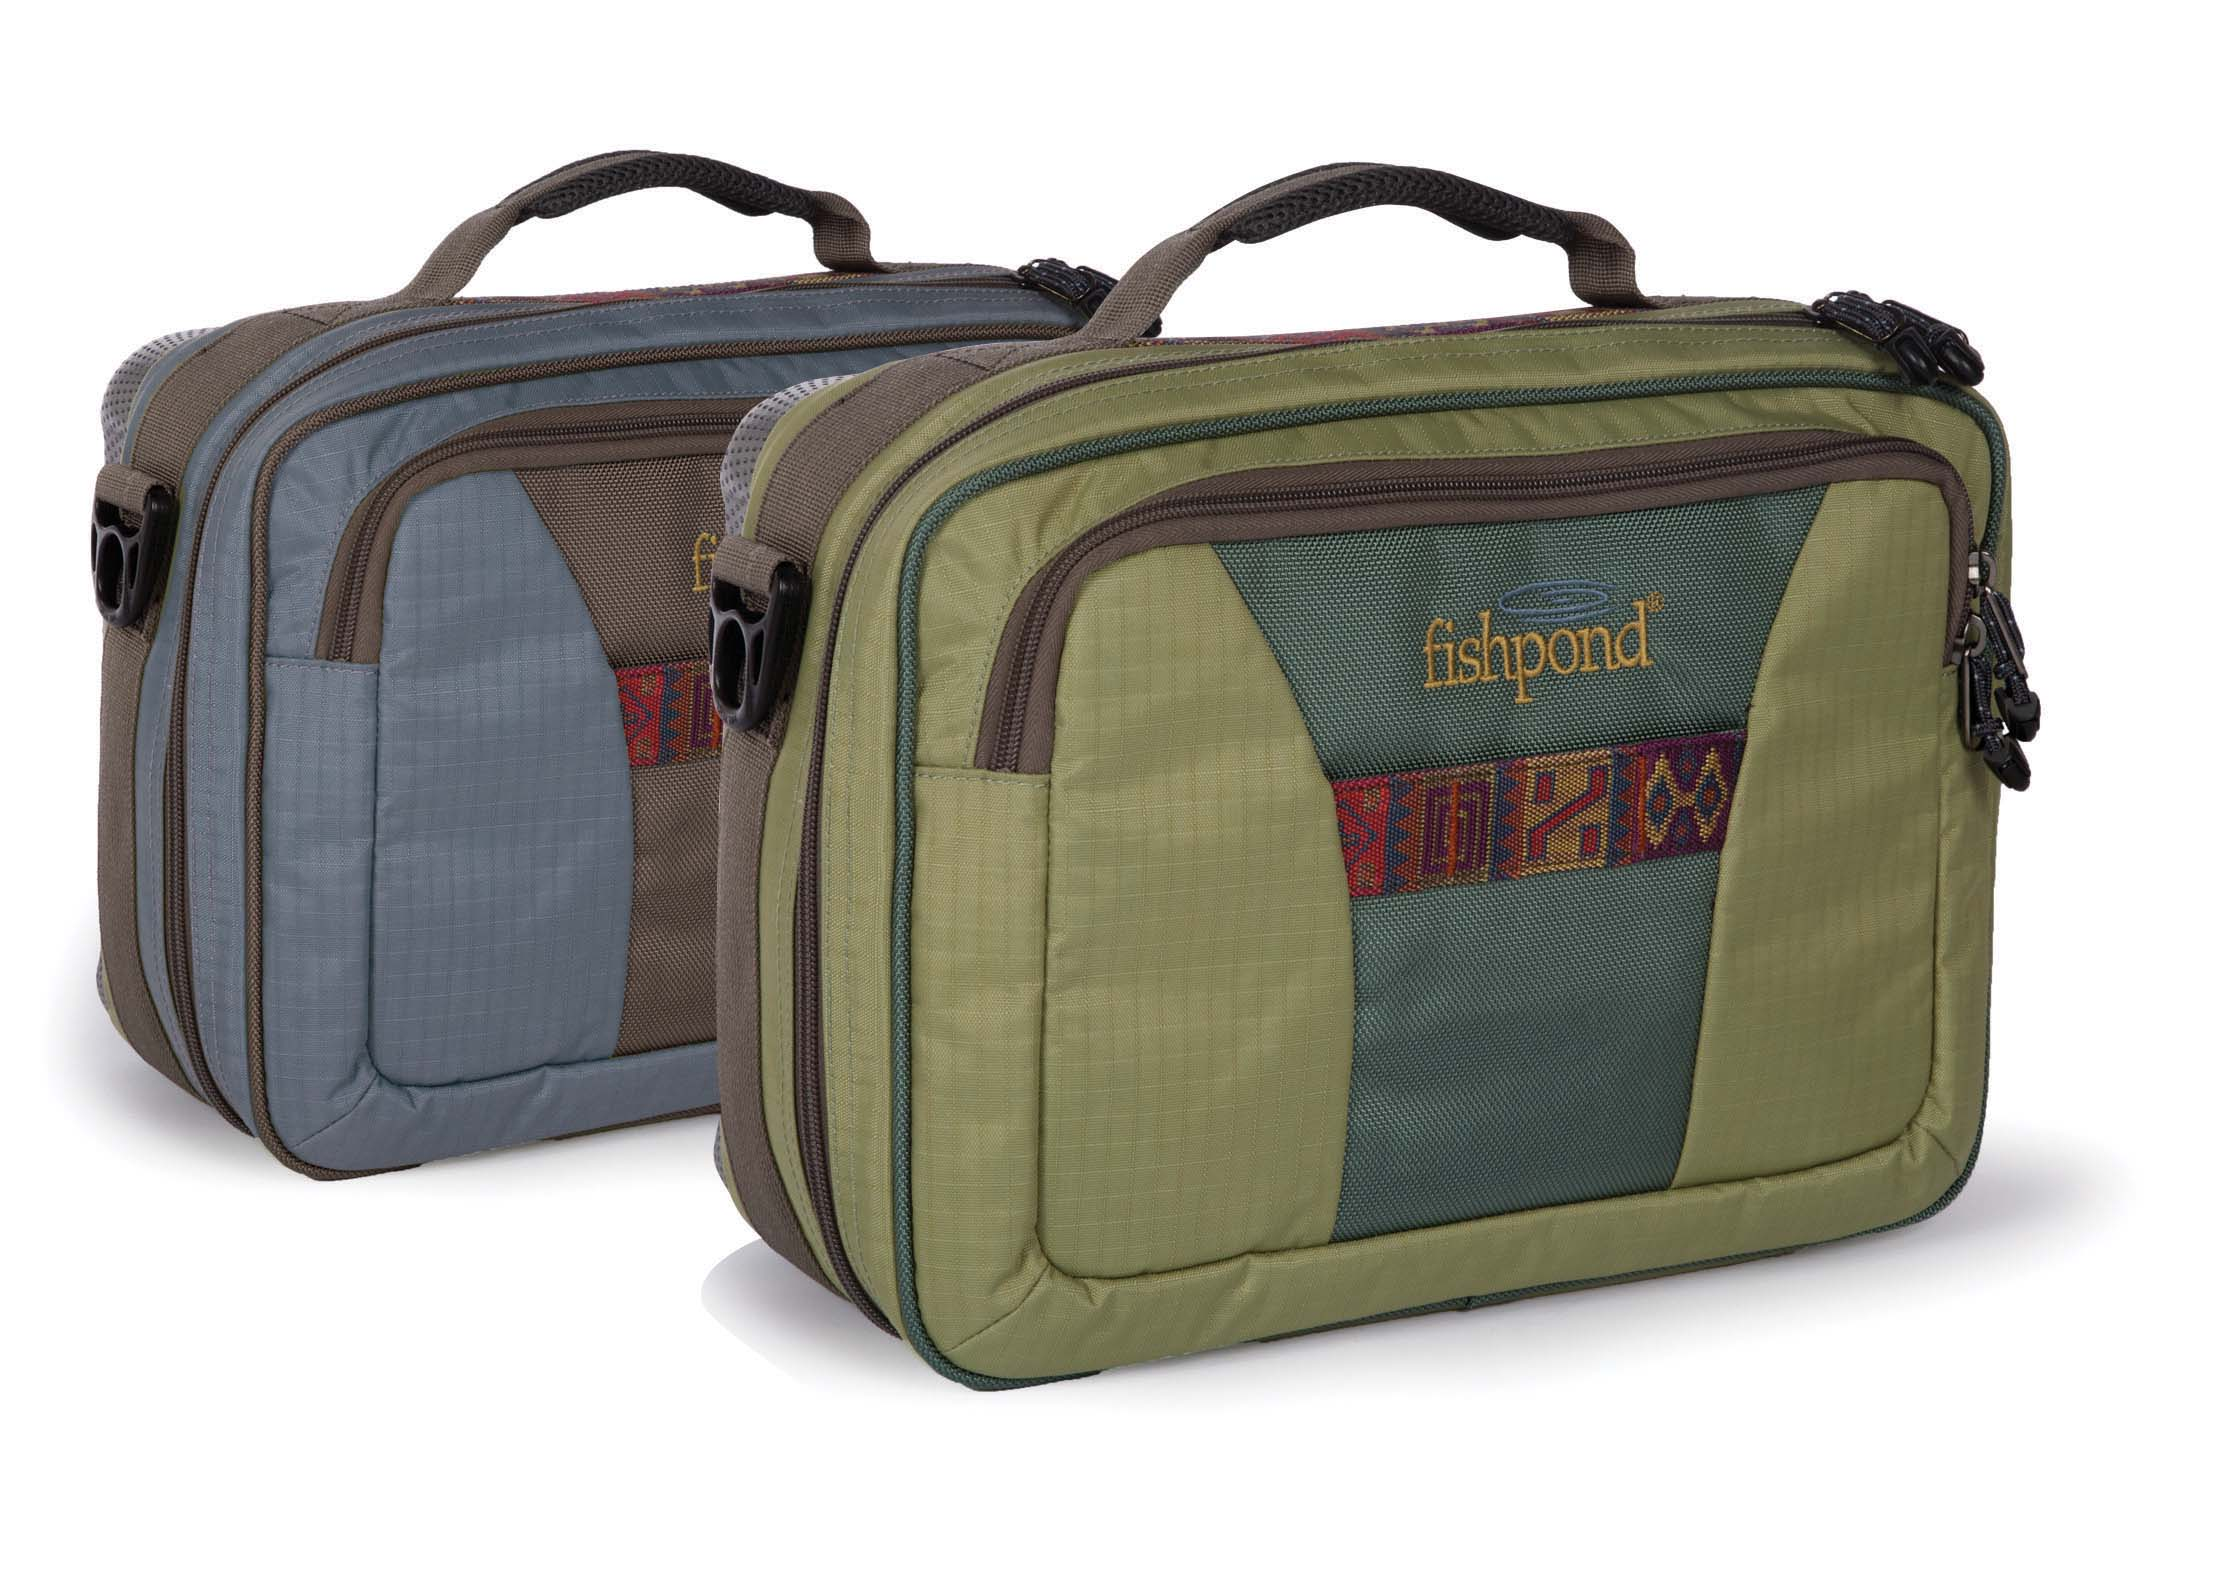 Fishpond Stowaway Reel Case Glasgow Angling Centre